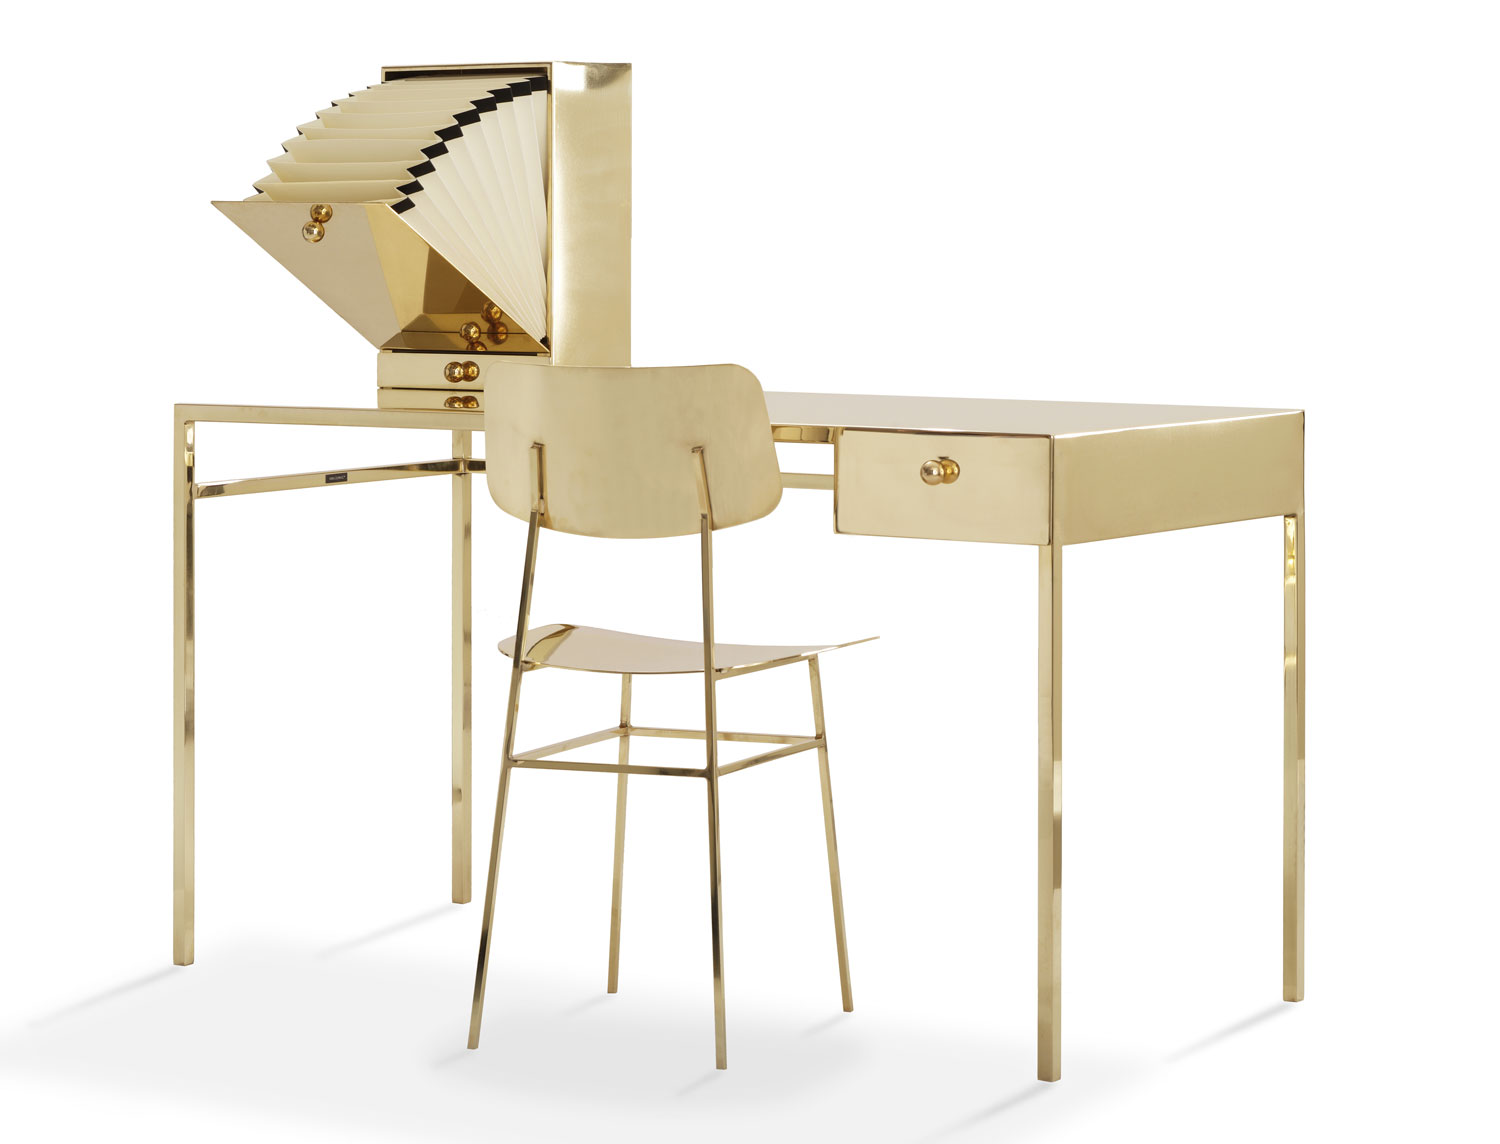 Nika Zupanc Naked Desk & Chair | #MILANTRACE2015 by Yellowtrace